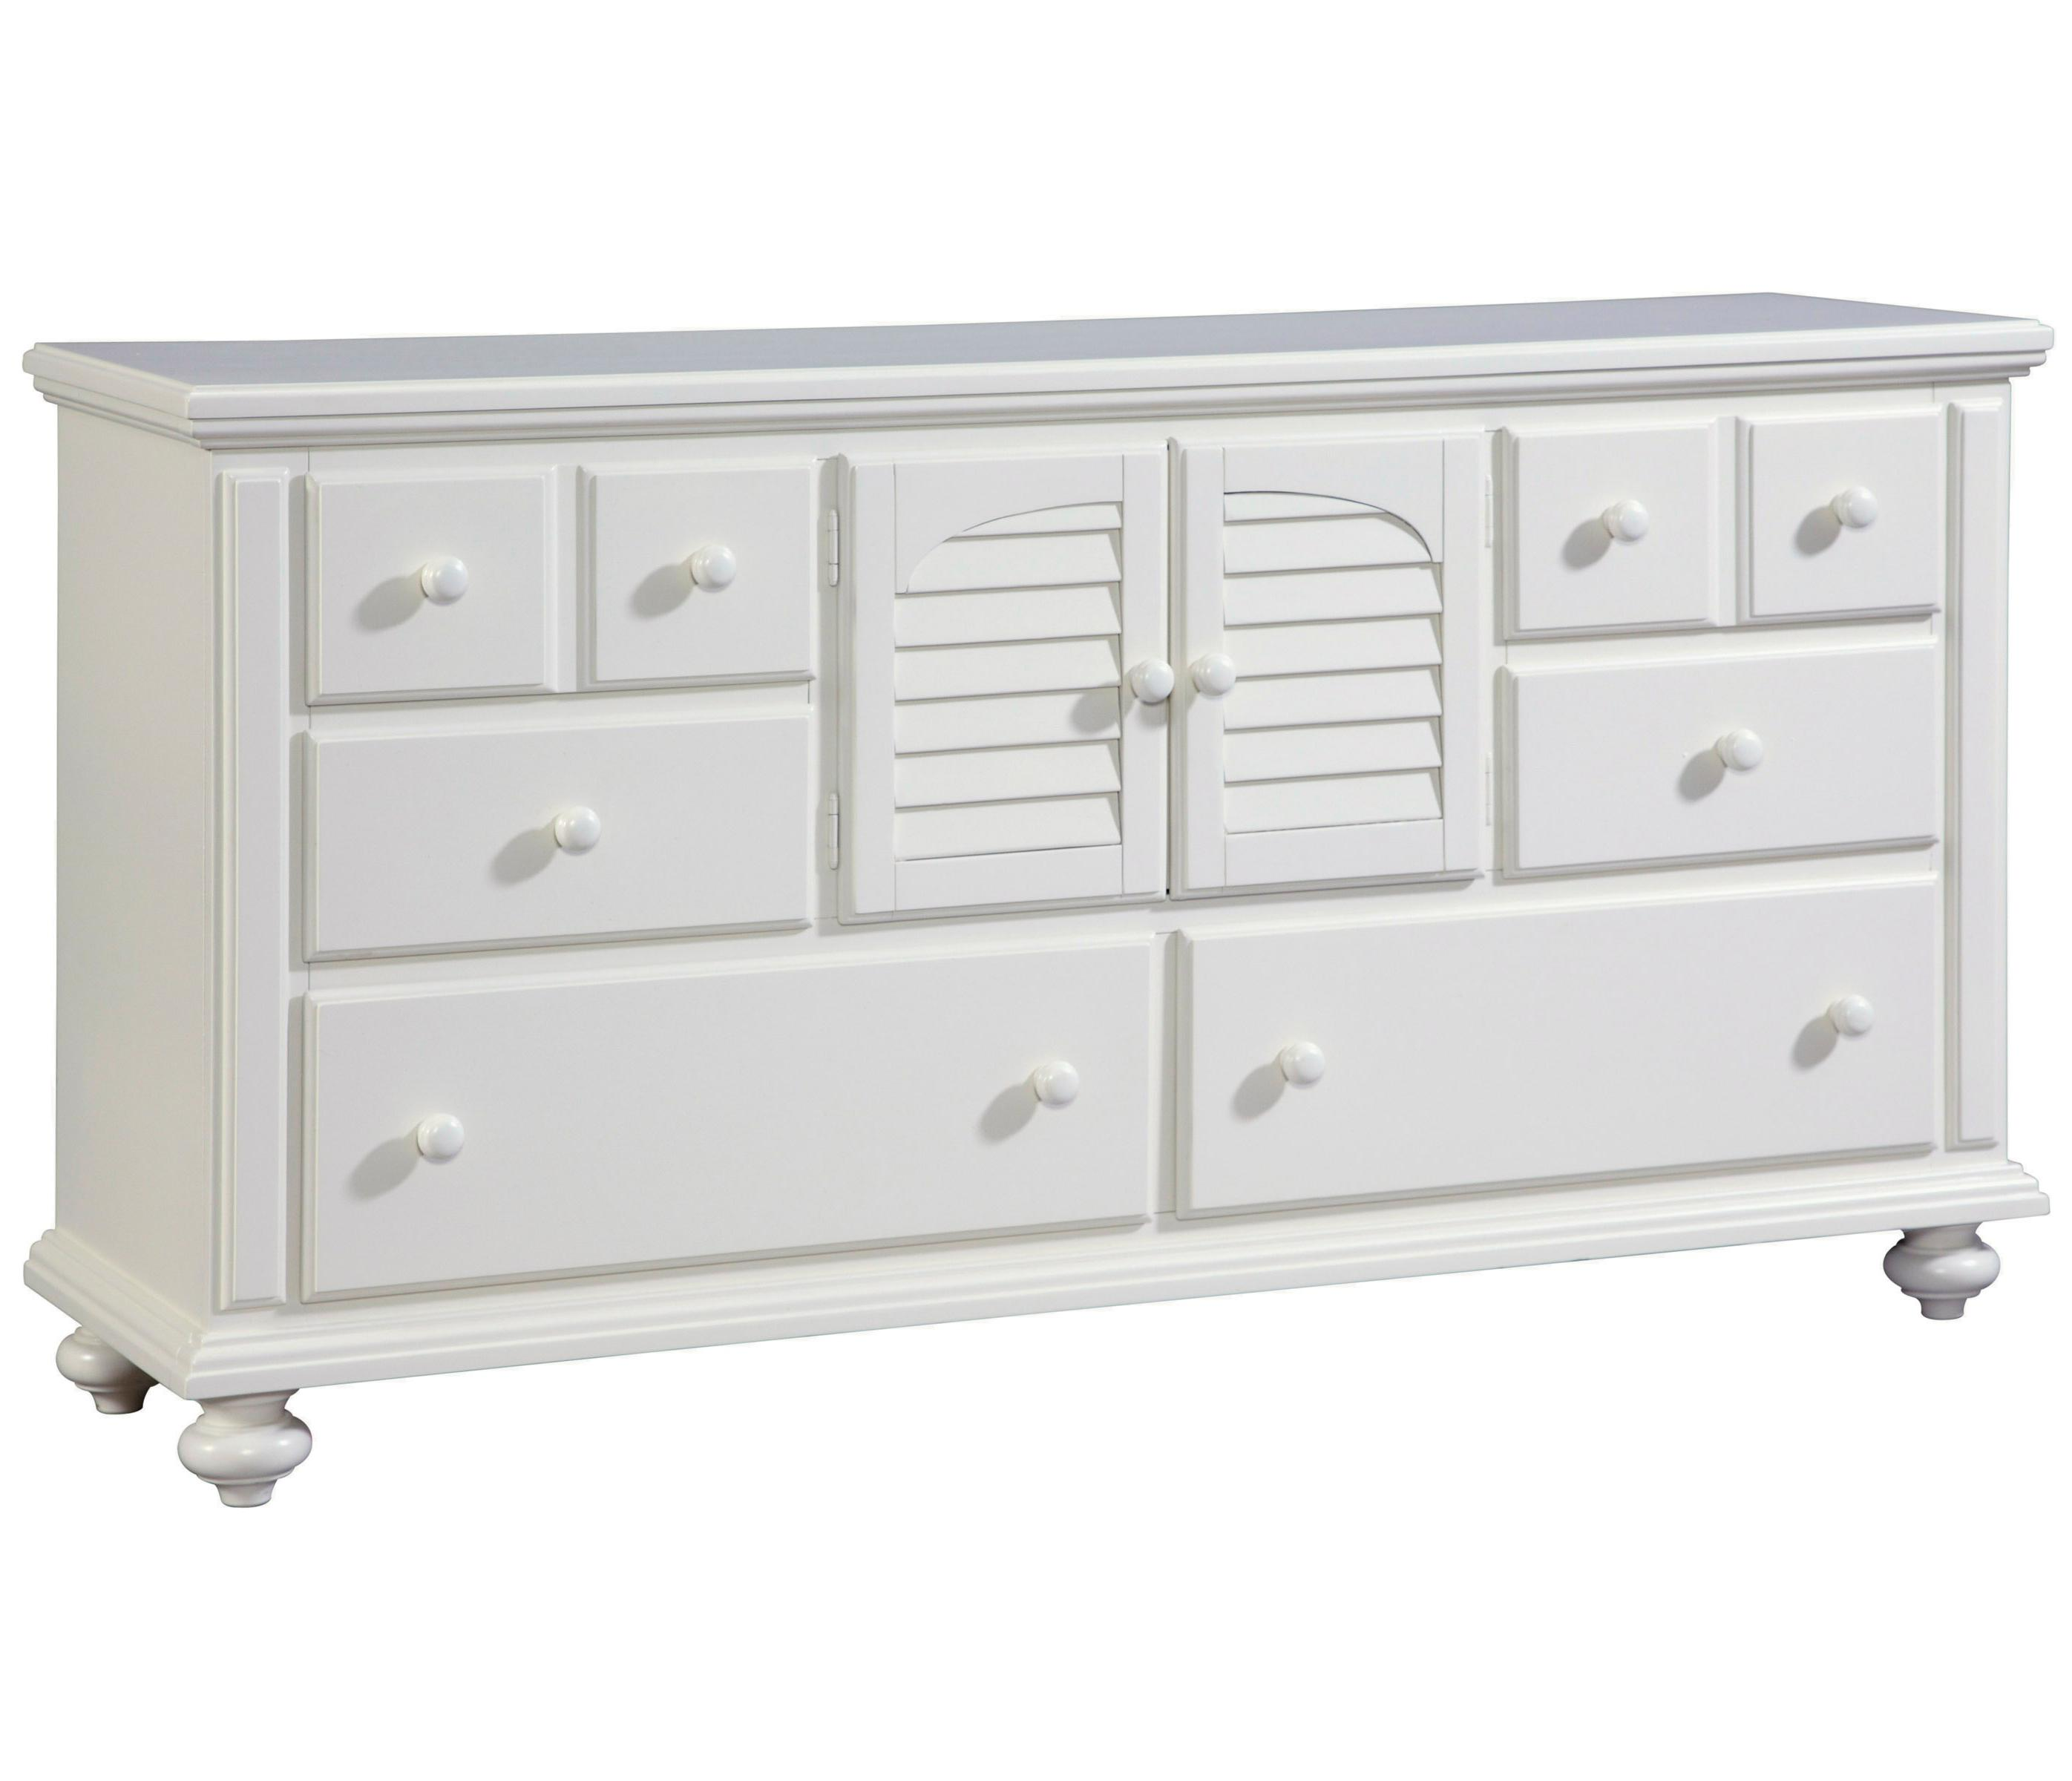 broyhill furniture seabrooke 2 door dresser with 6 drawers hudson 39 s